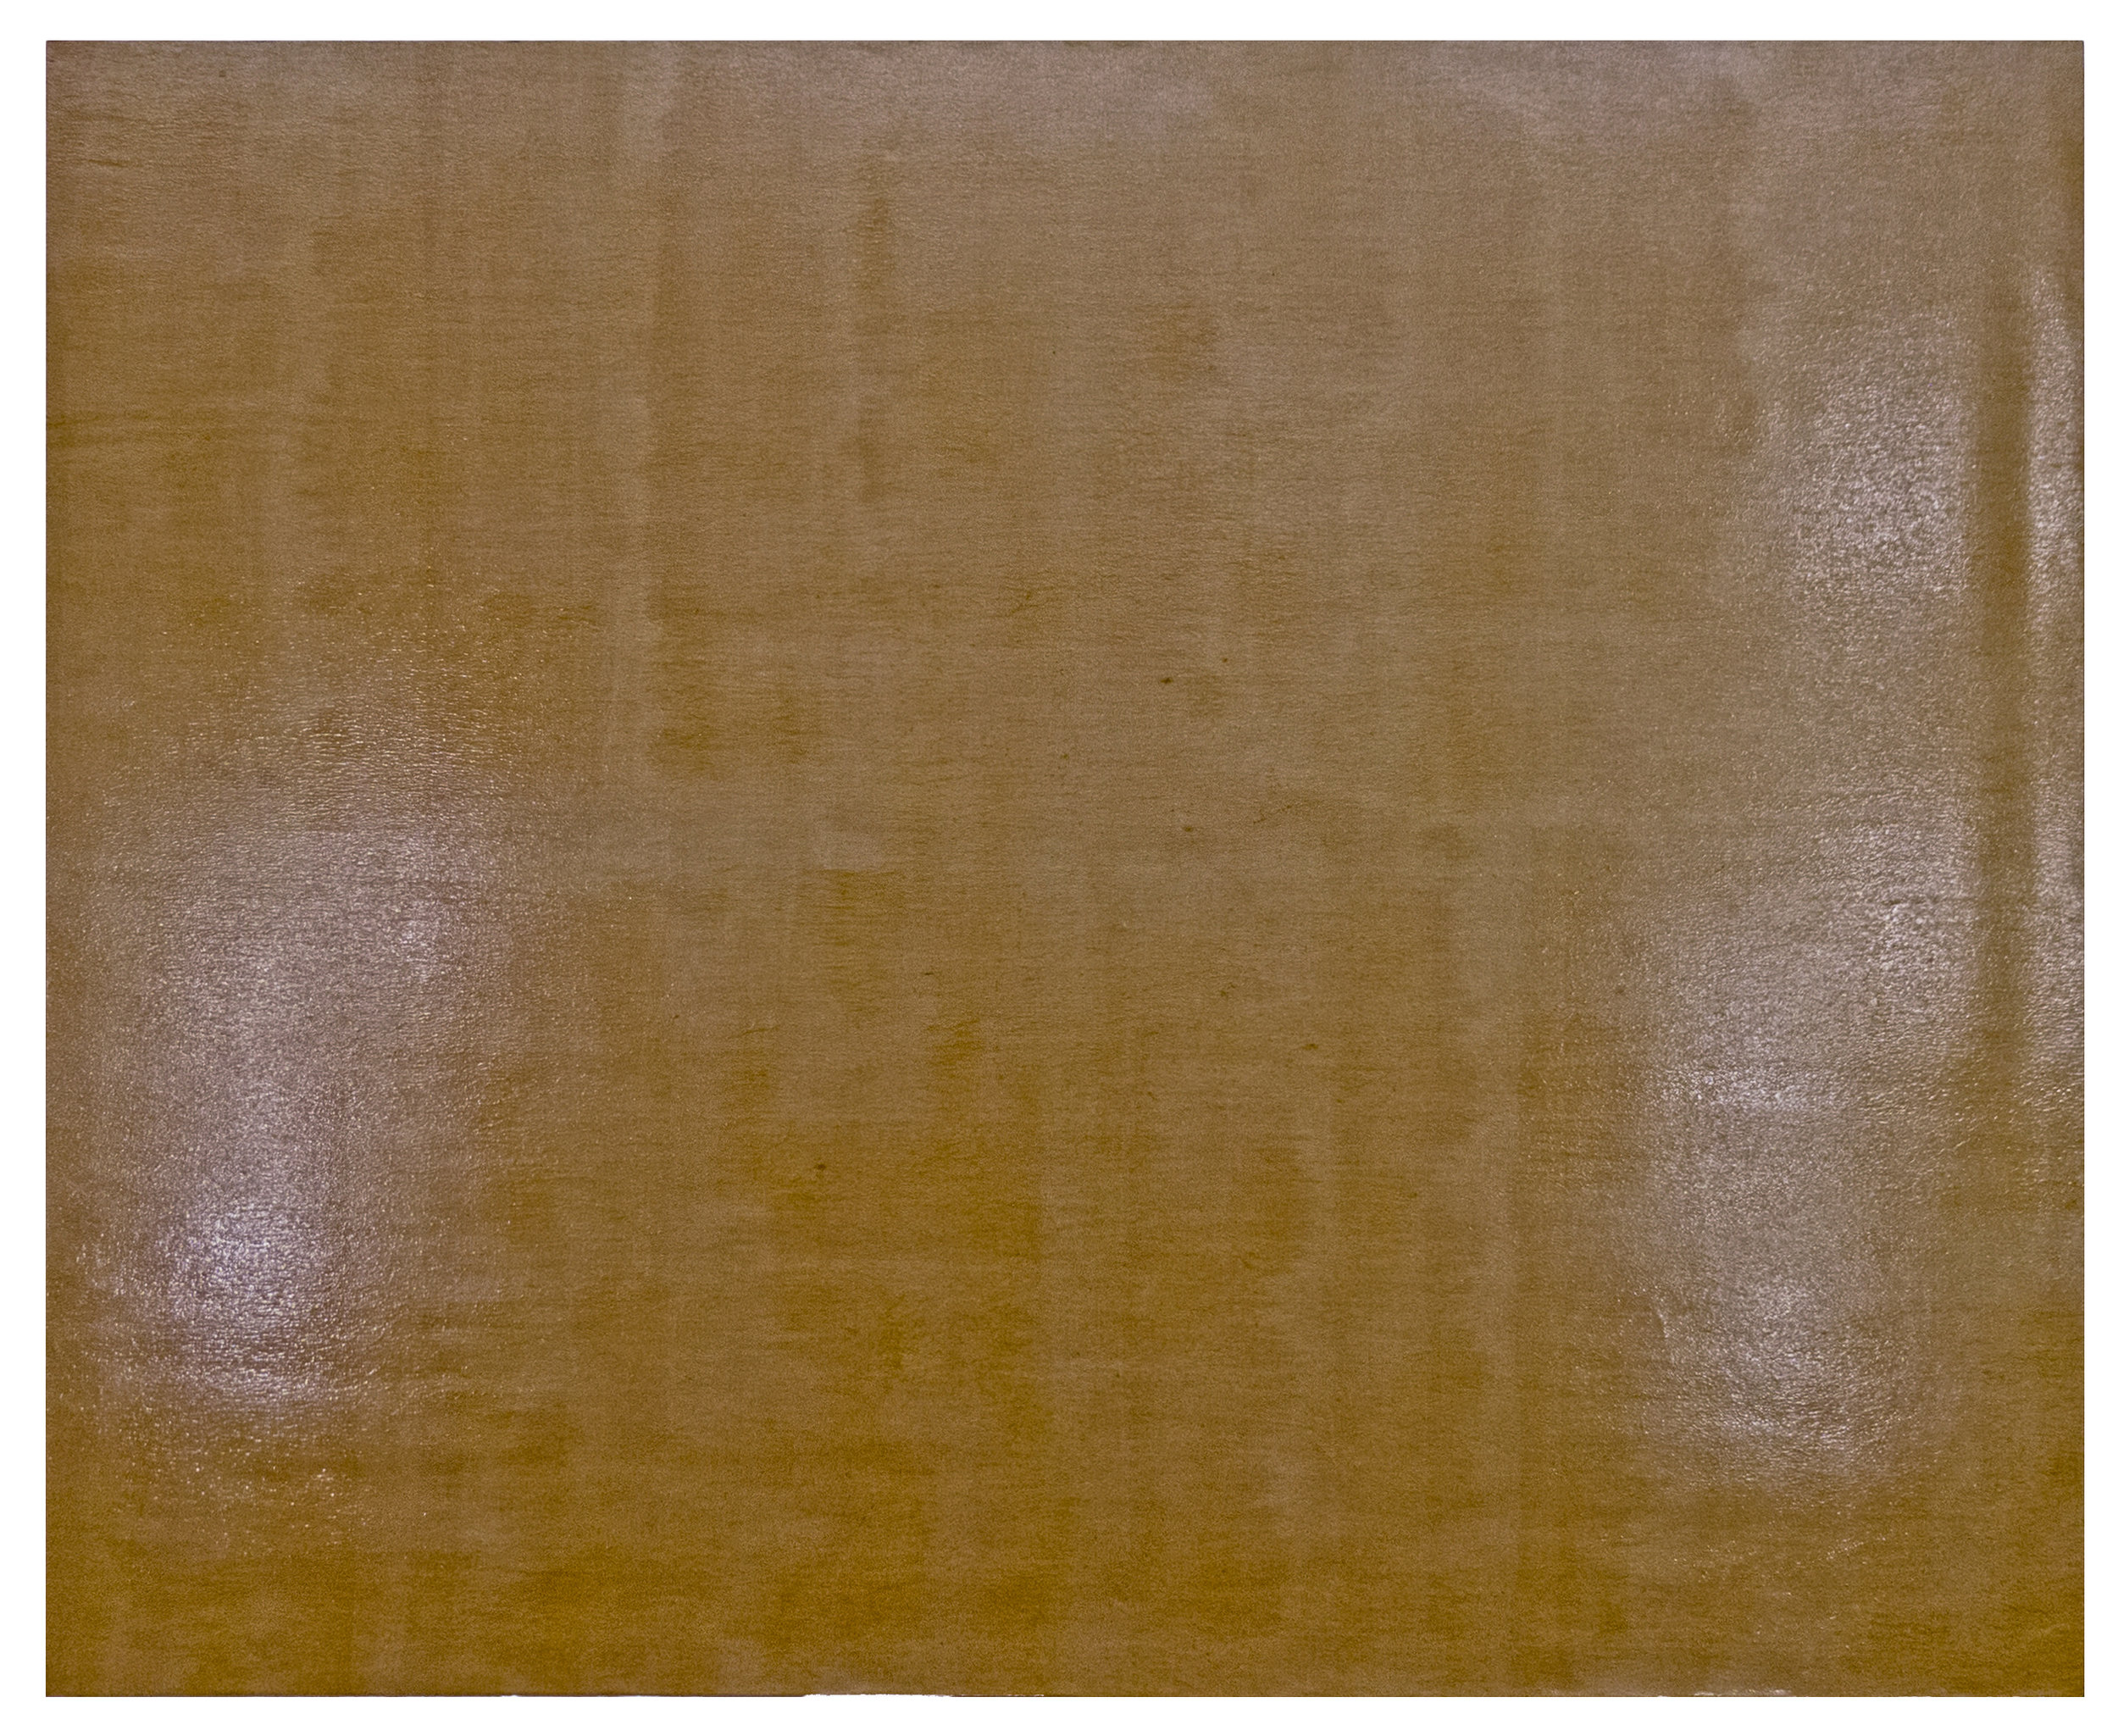 "Kweye; 1971; Resin/emulsion on unpainted linen; 80 x 100""; Item #254"